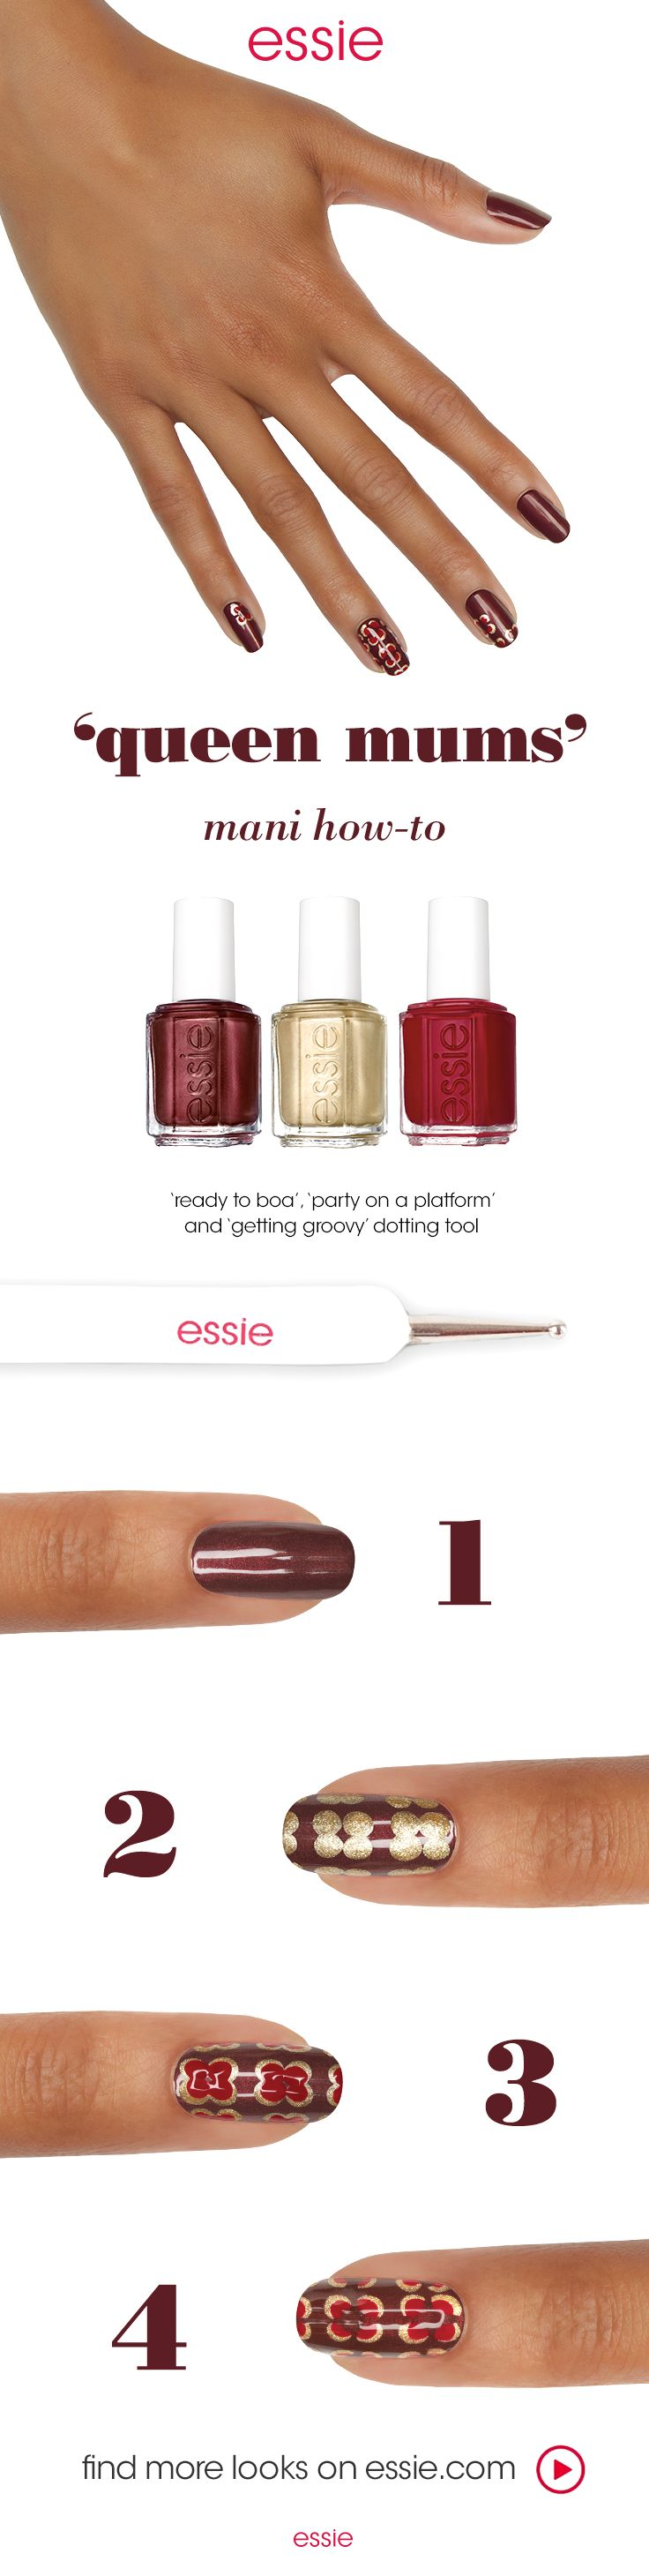 It's getting groovy with nail art featuring essie winter 2016 collection. Recreate the 'queen of mums' nail art look using glistening bronzed mahogany 'ready to boa', london garnet red 'party on a platform' and metallic gold palladium  'getting groovy'.